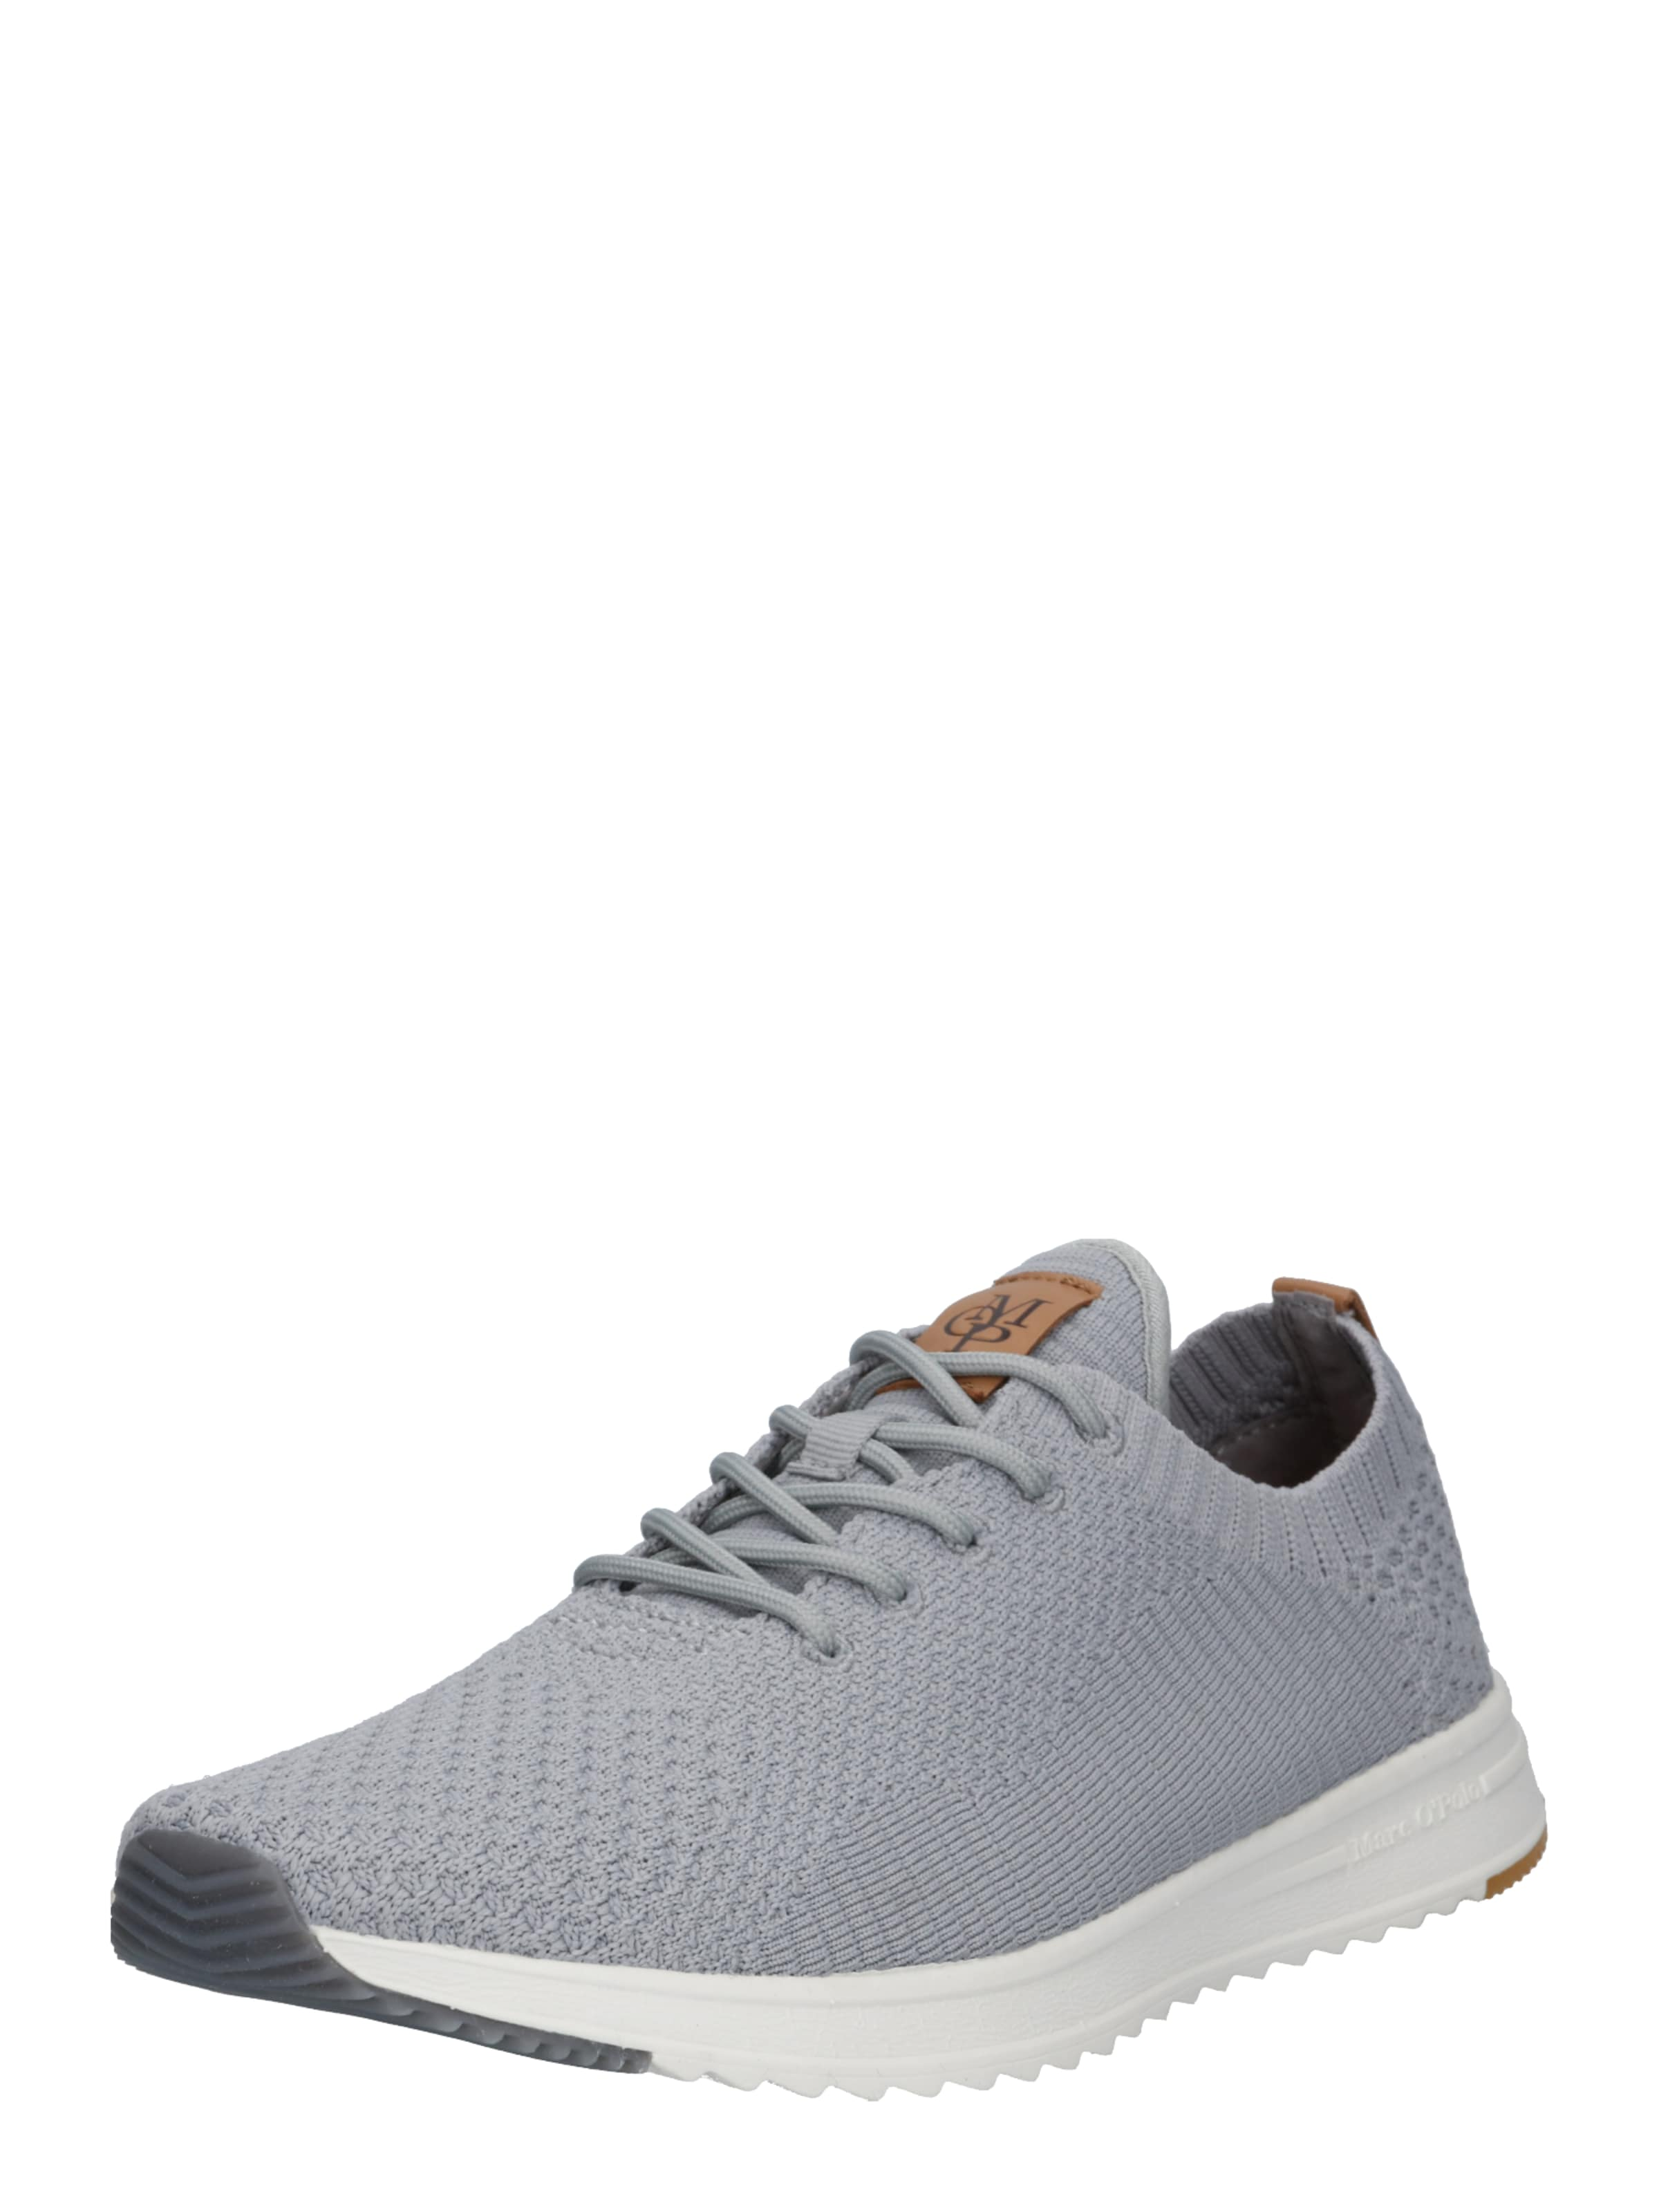 Olive In O'poloBaskets Marc Basses Basses Marc O'poloBaskets yvIfb6gY7